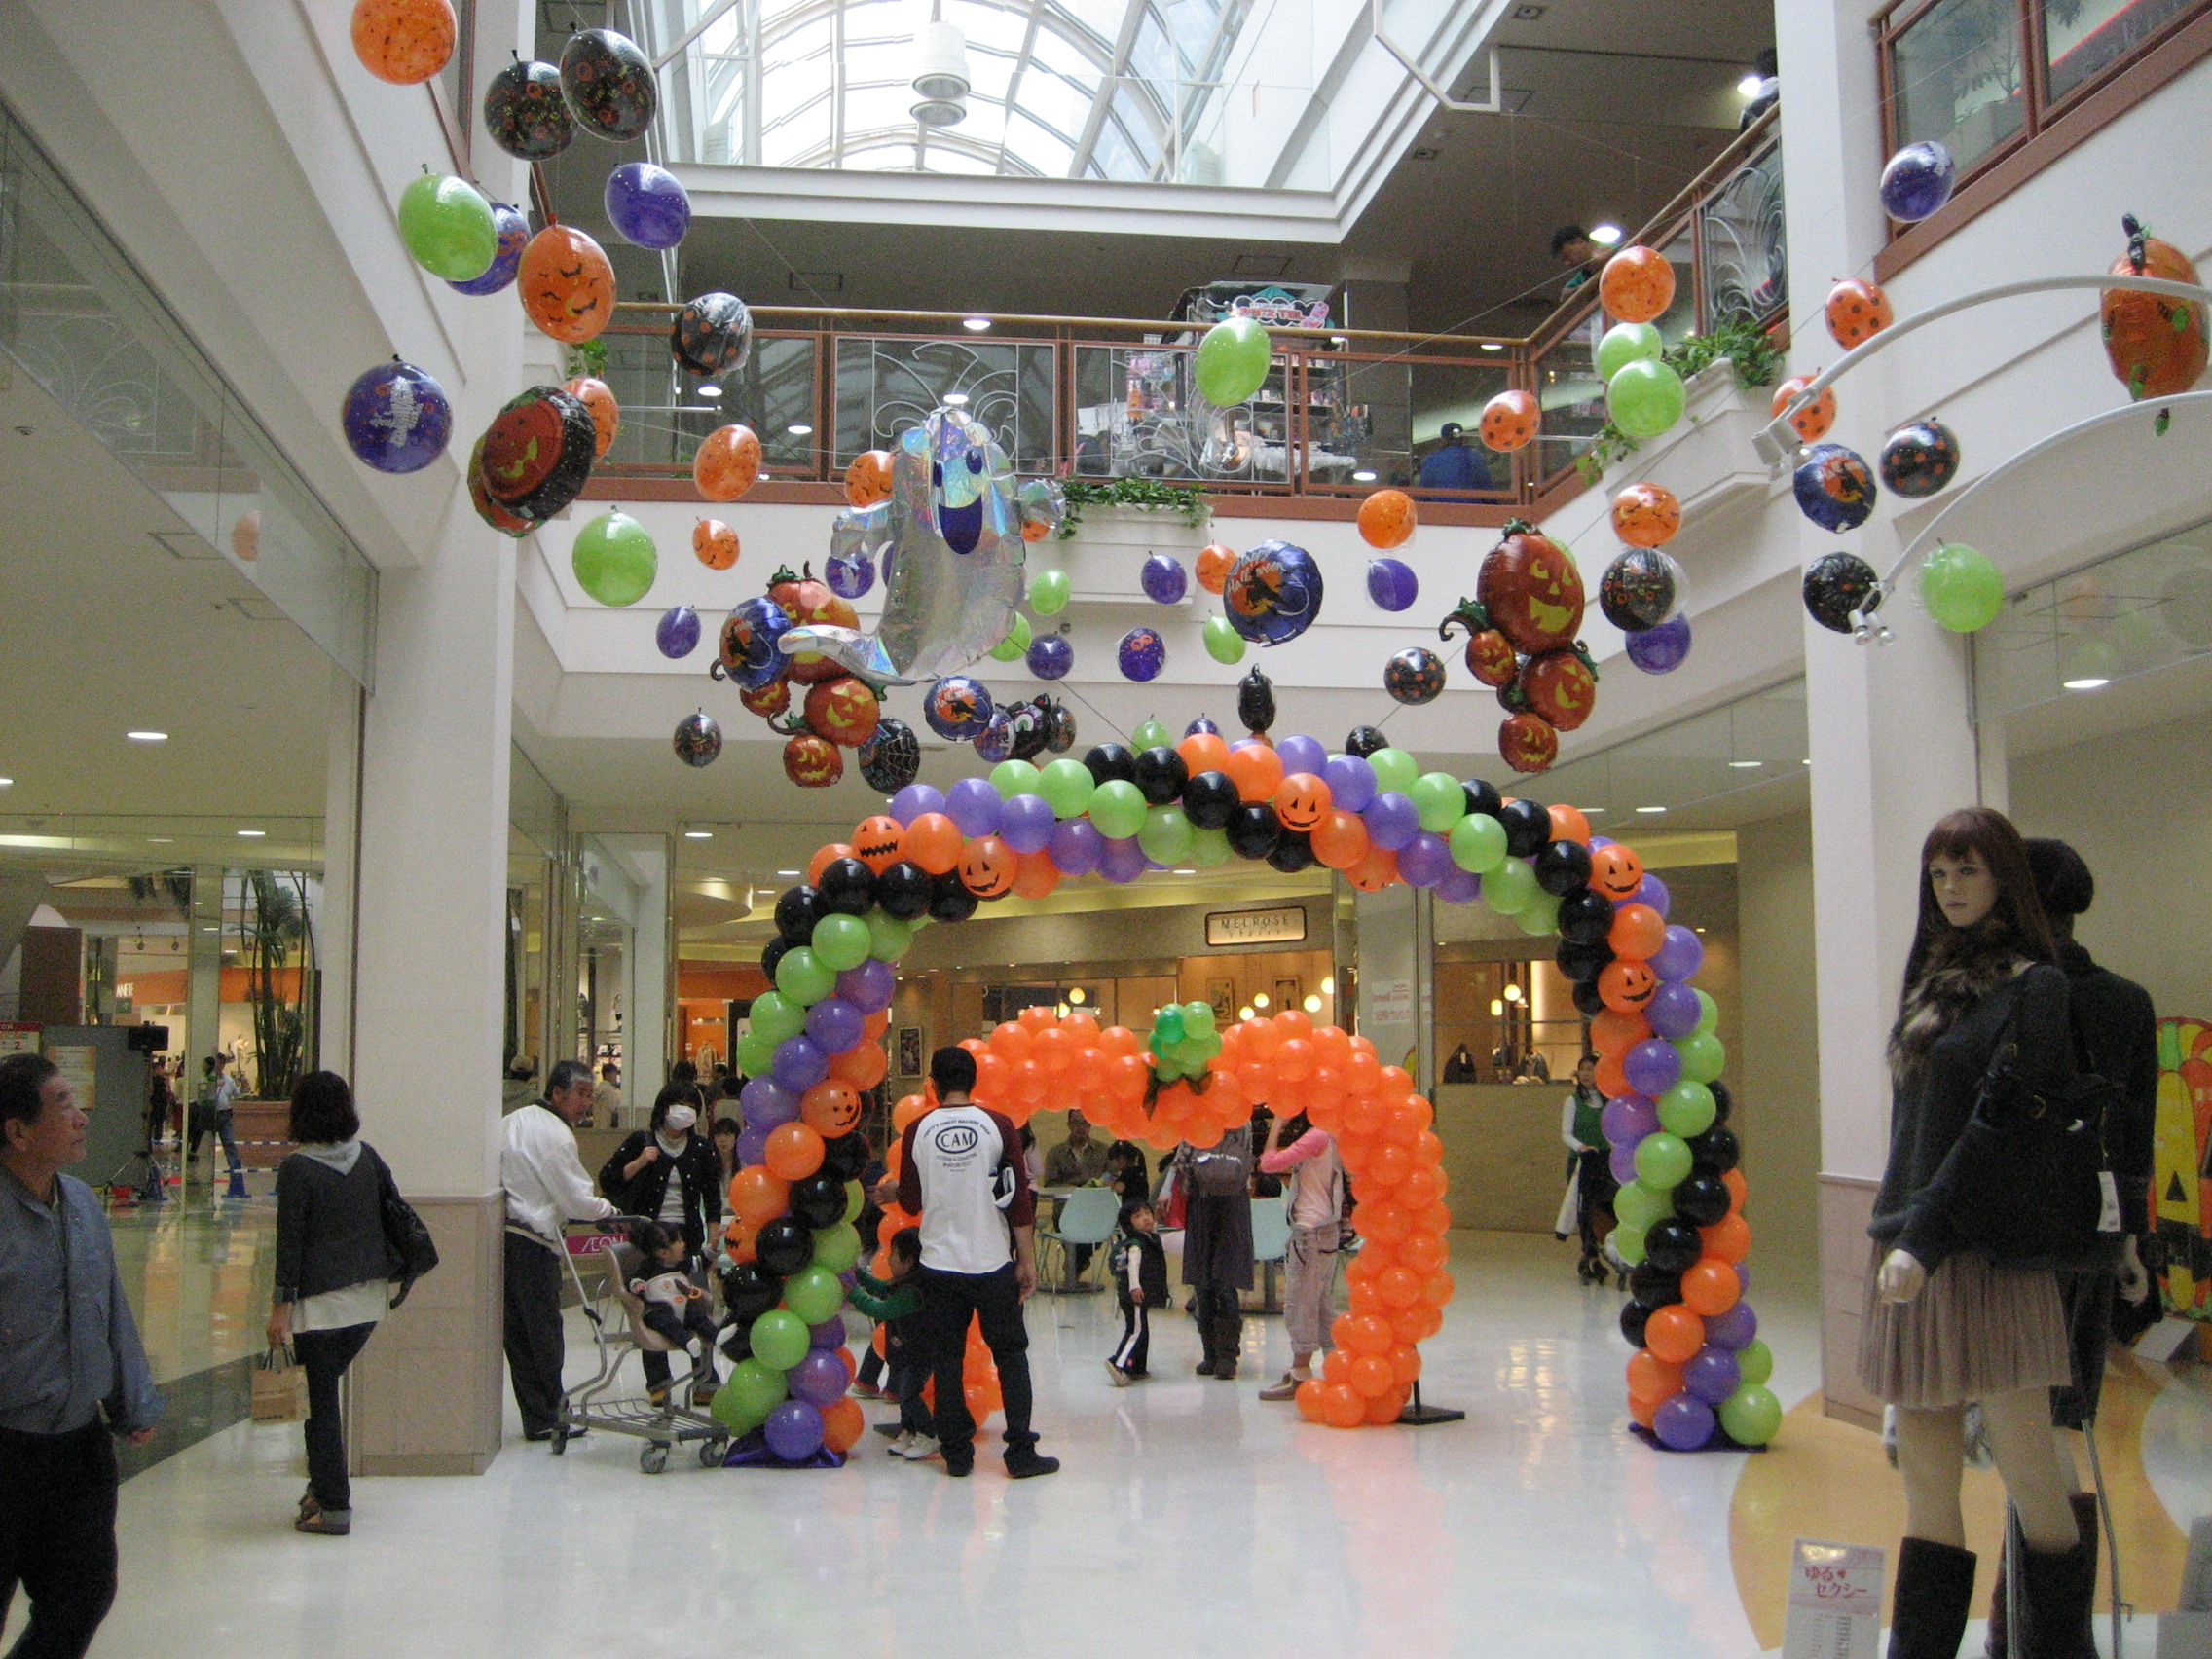 Hallowee decoration at the mall